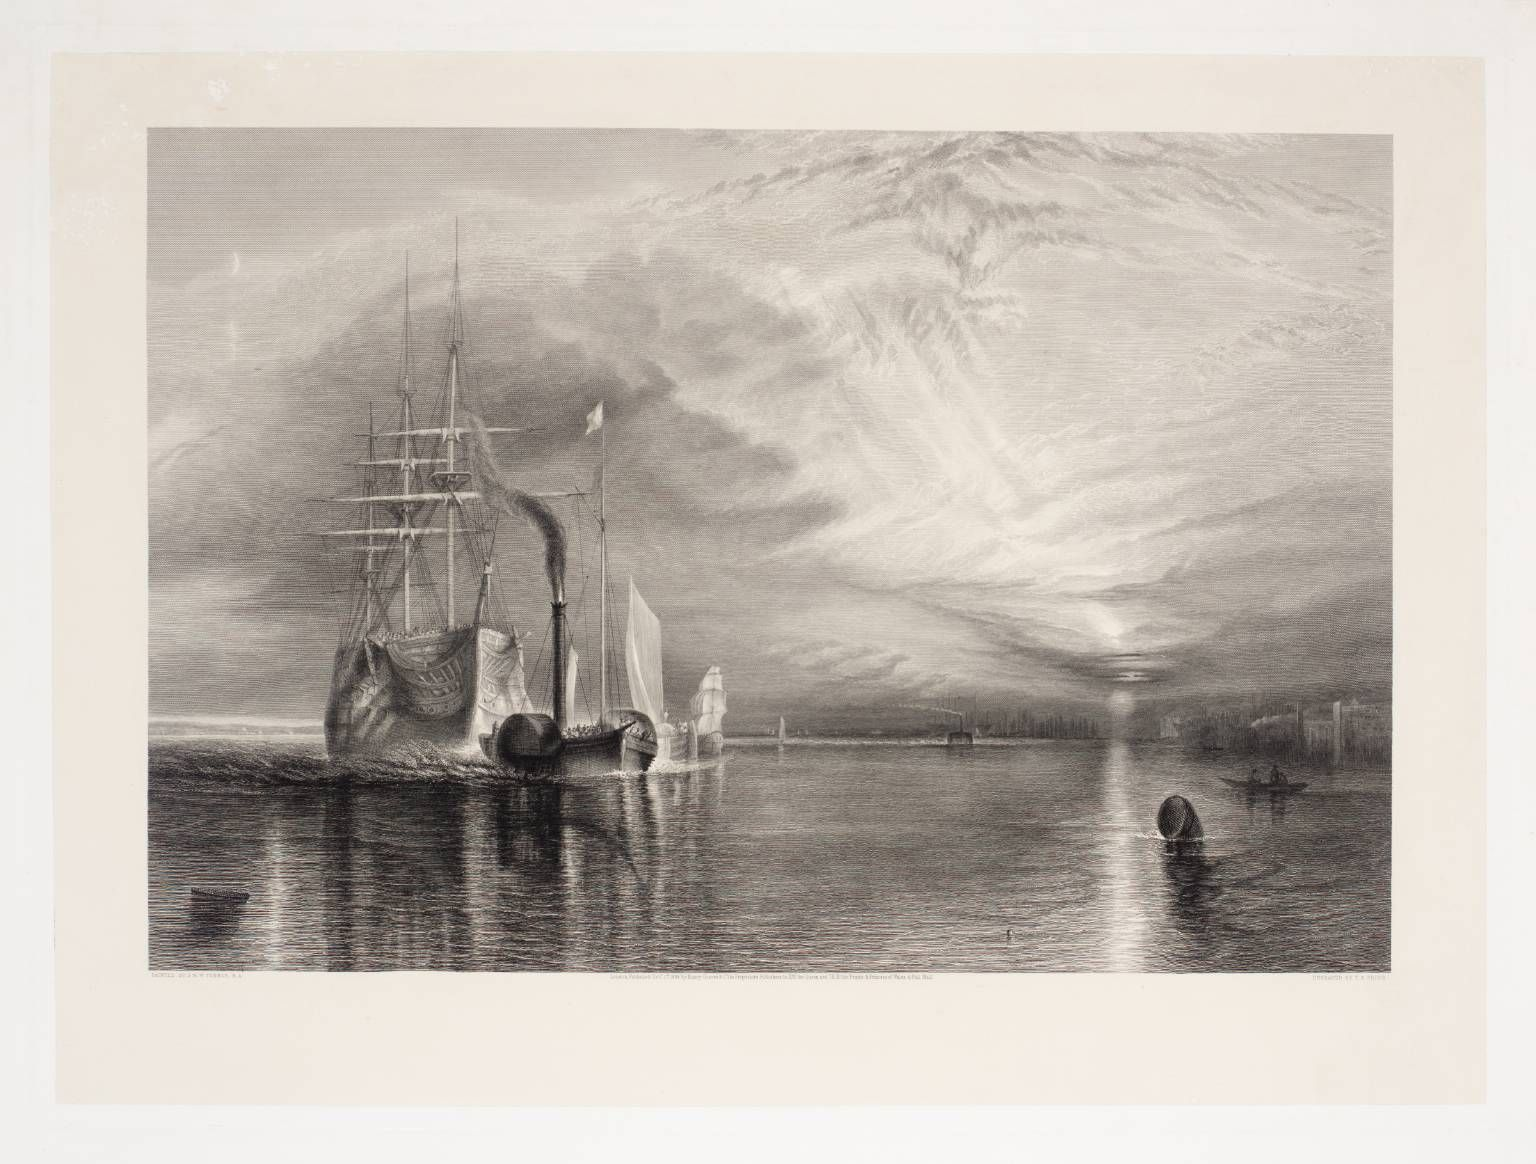 After Joseph Mallord William Turner, 'The Fighting Téméraire, engraved by T.A. Prior' published 1886